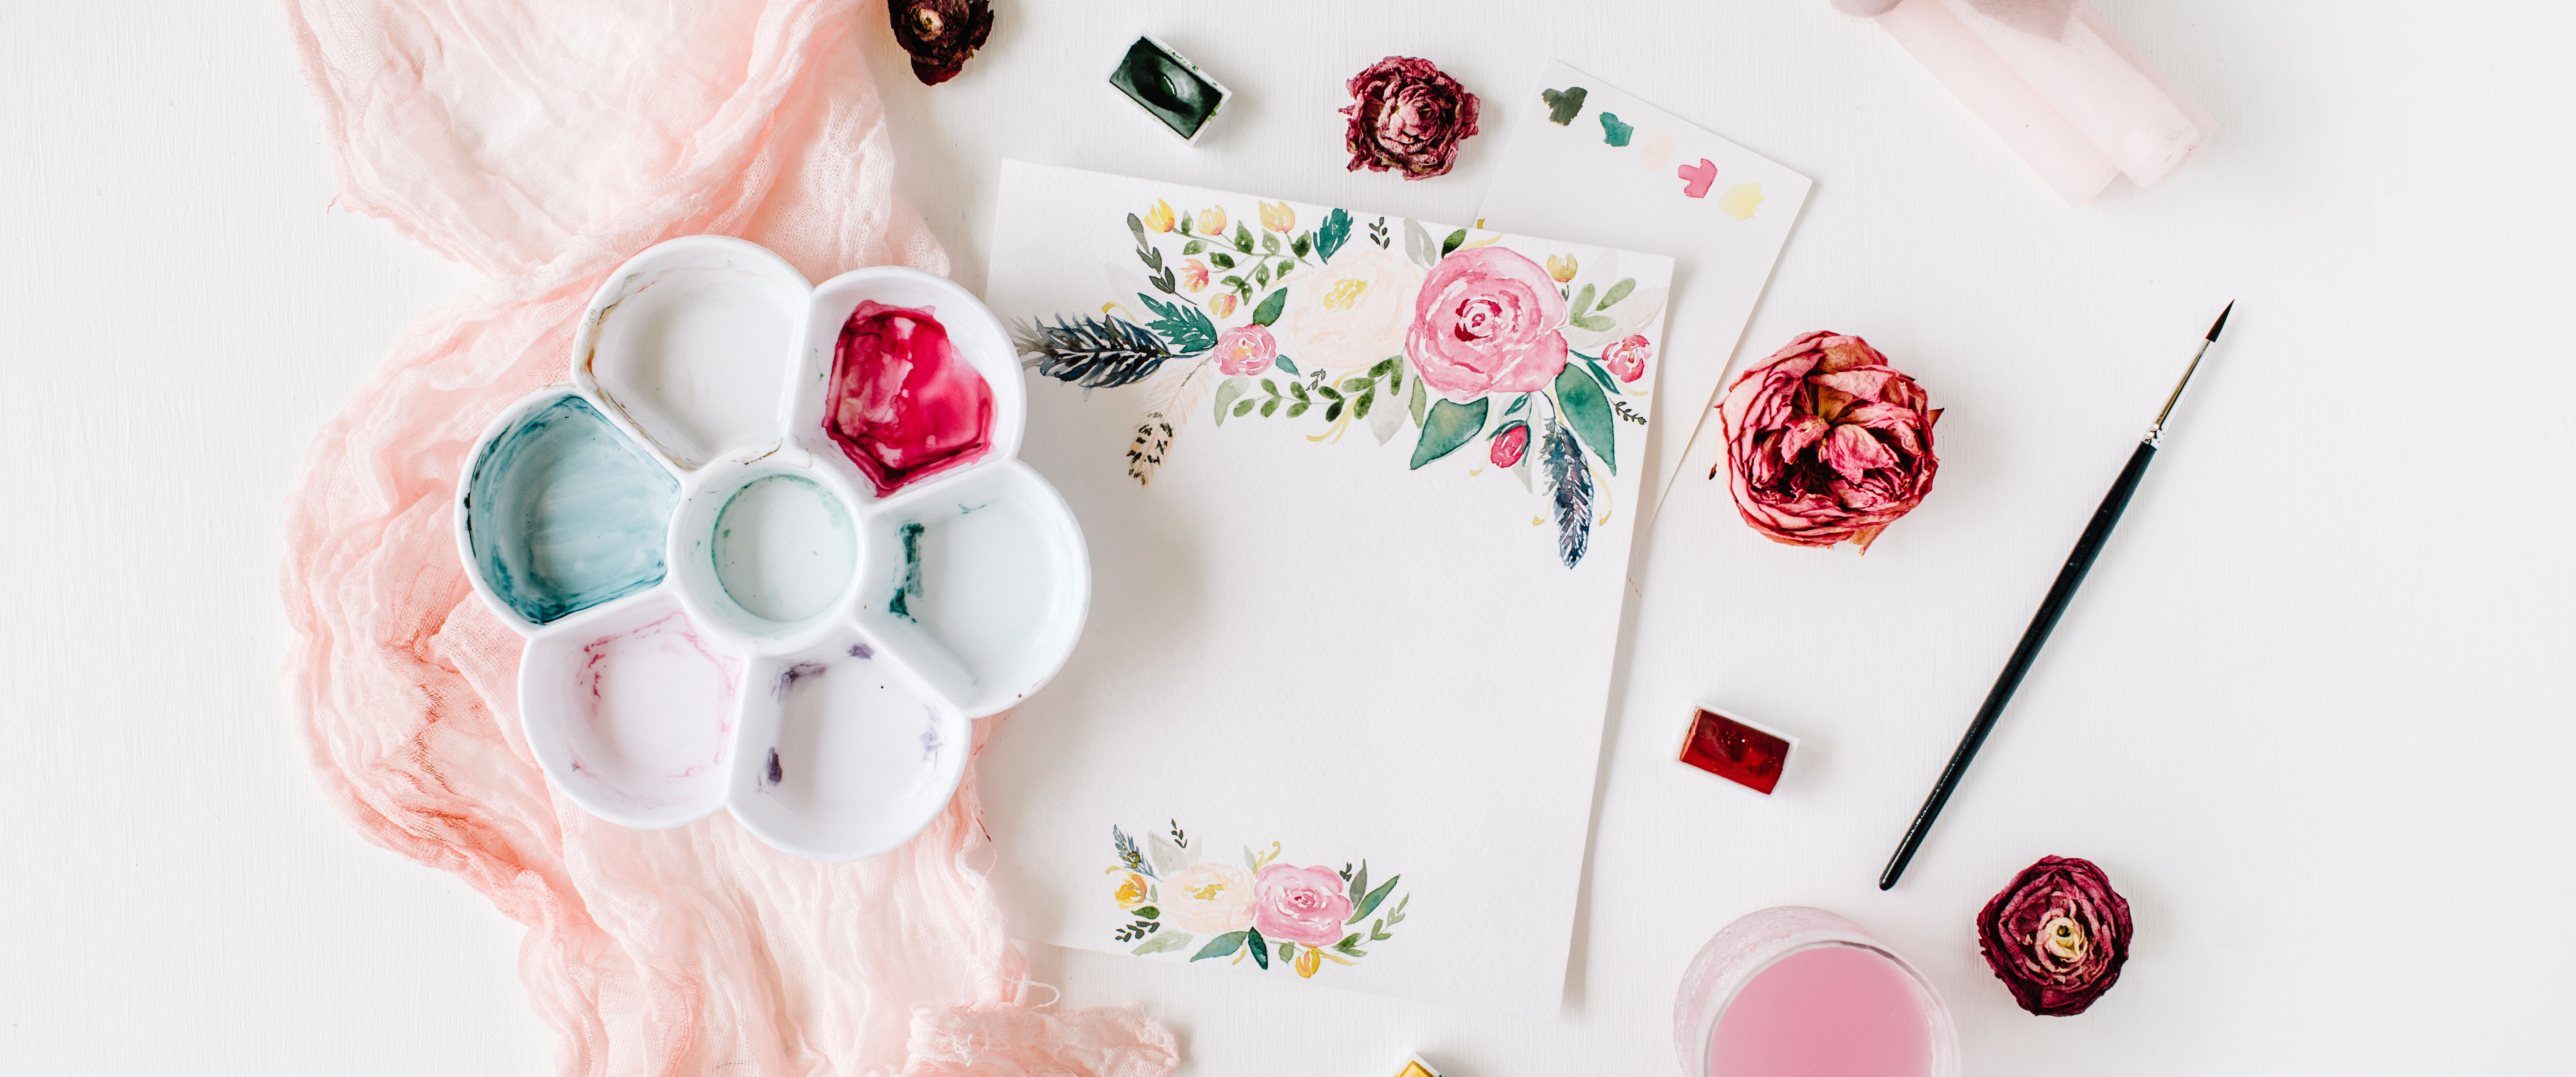 Workspace. Pink and red roses painted with watercolor, paintbrush and roses on white wooden background. Overhead view. Flat lay, top view